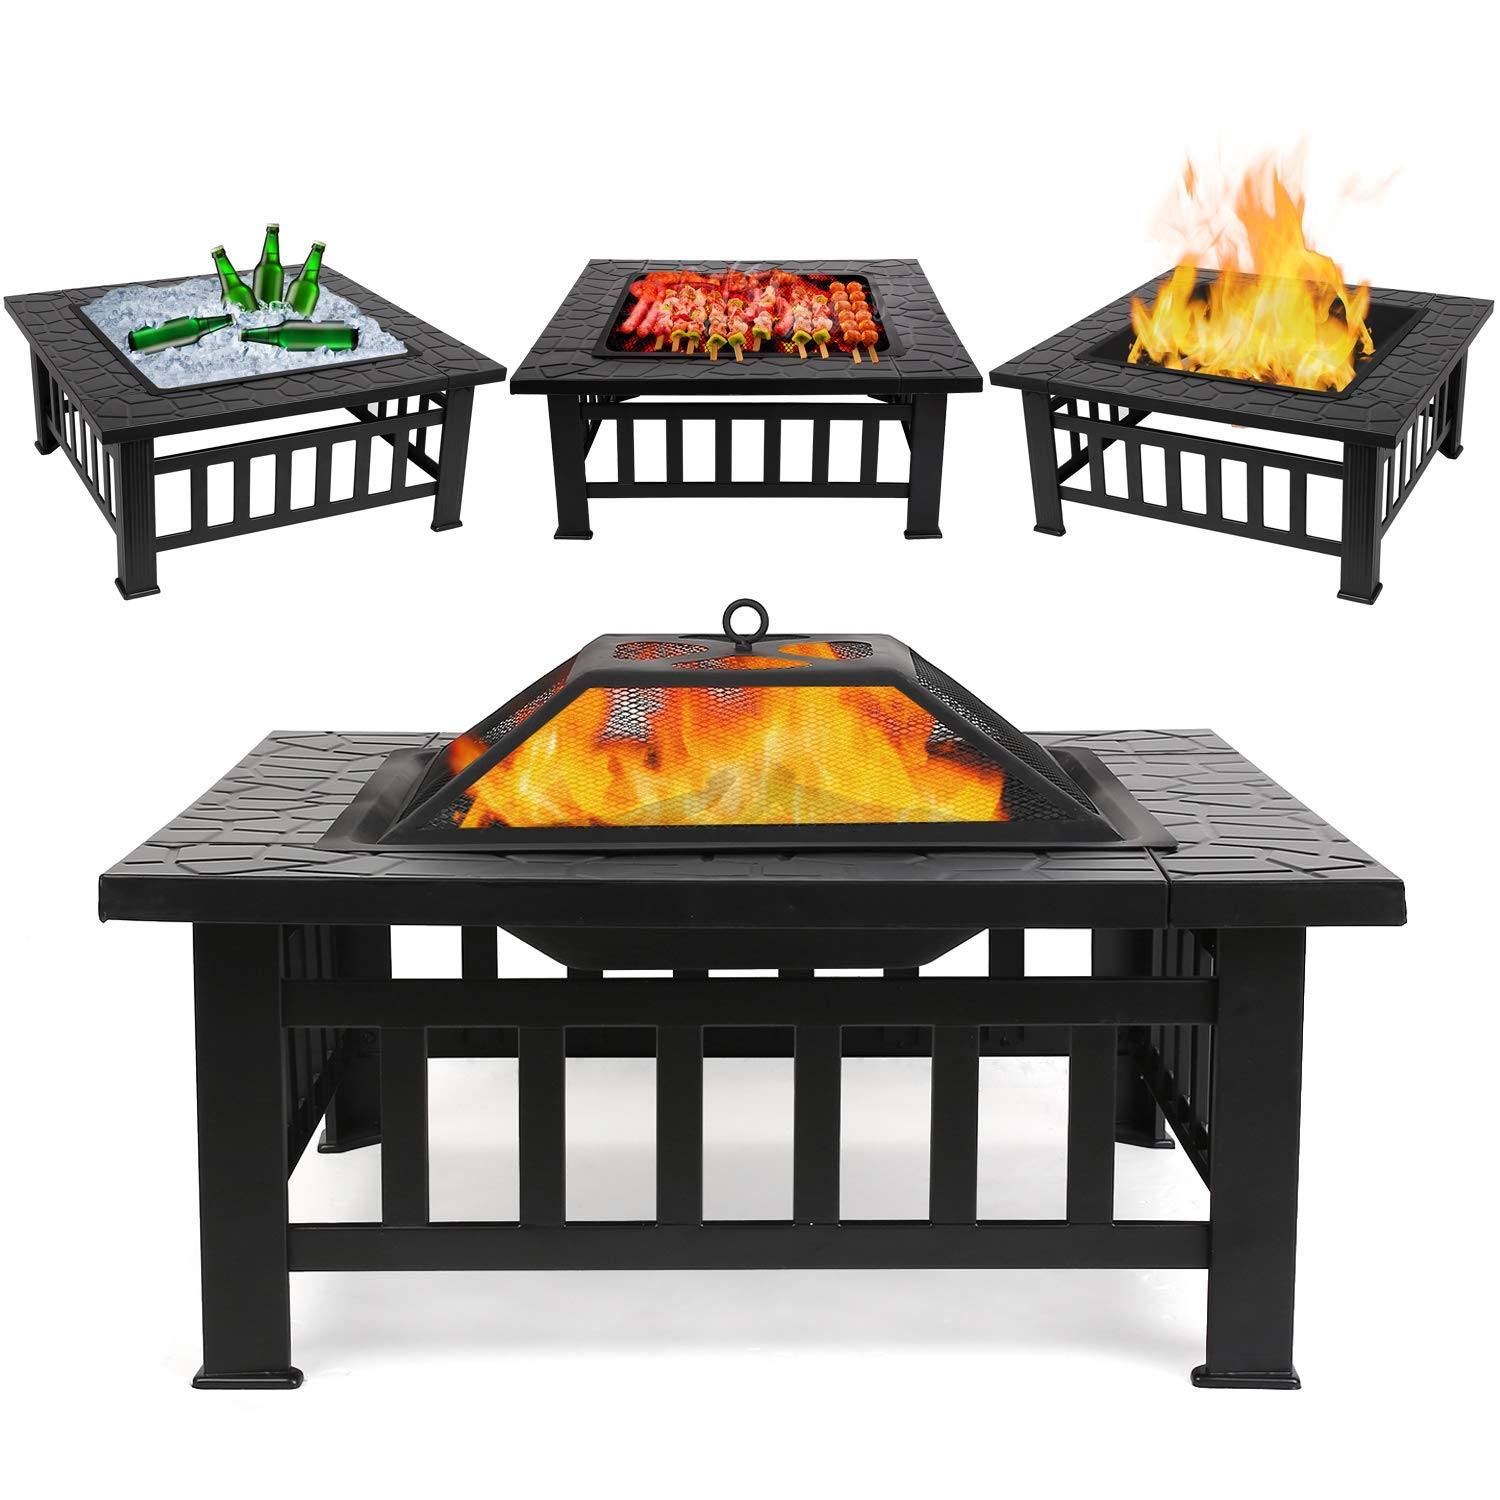 FIXKIT Fire Pit Table Outdoor with BBQ Grill Shelf, Multifunctional Garden Terrace Fire Bowl Heater/BBQ/Ice Pit, 32'' Diameter Square Fireplace with Waterproof Cover by FIXKIT